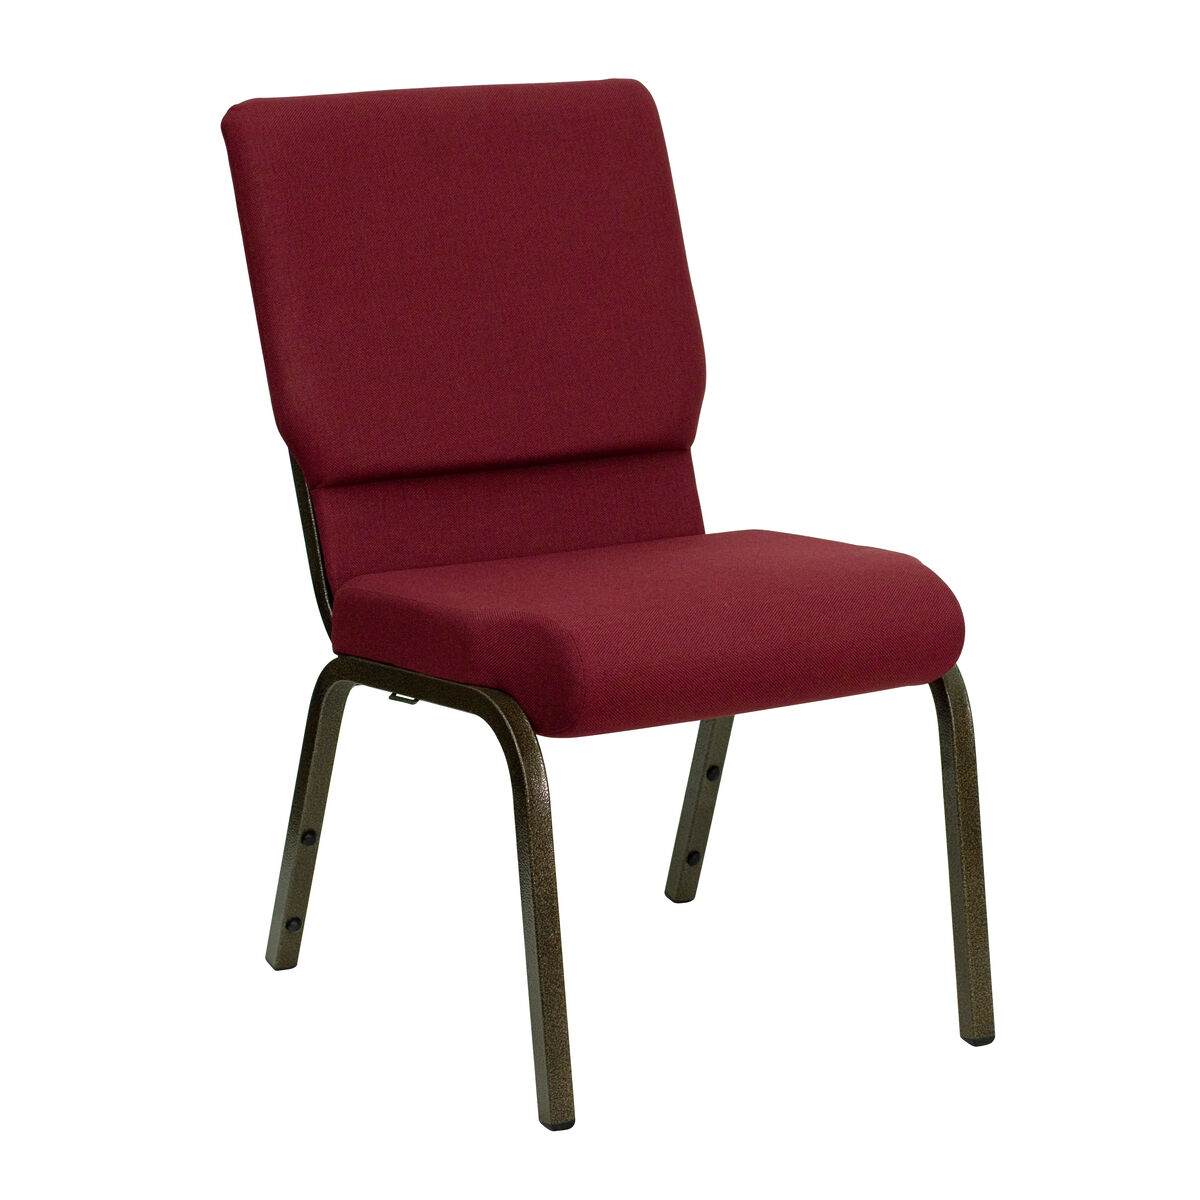 Stacking Church Chair in Burgundy Fabric Gold Metal Legs